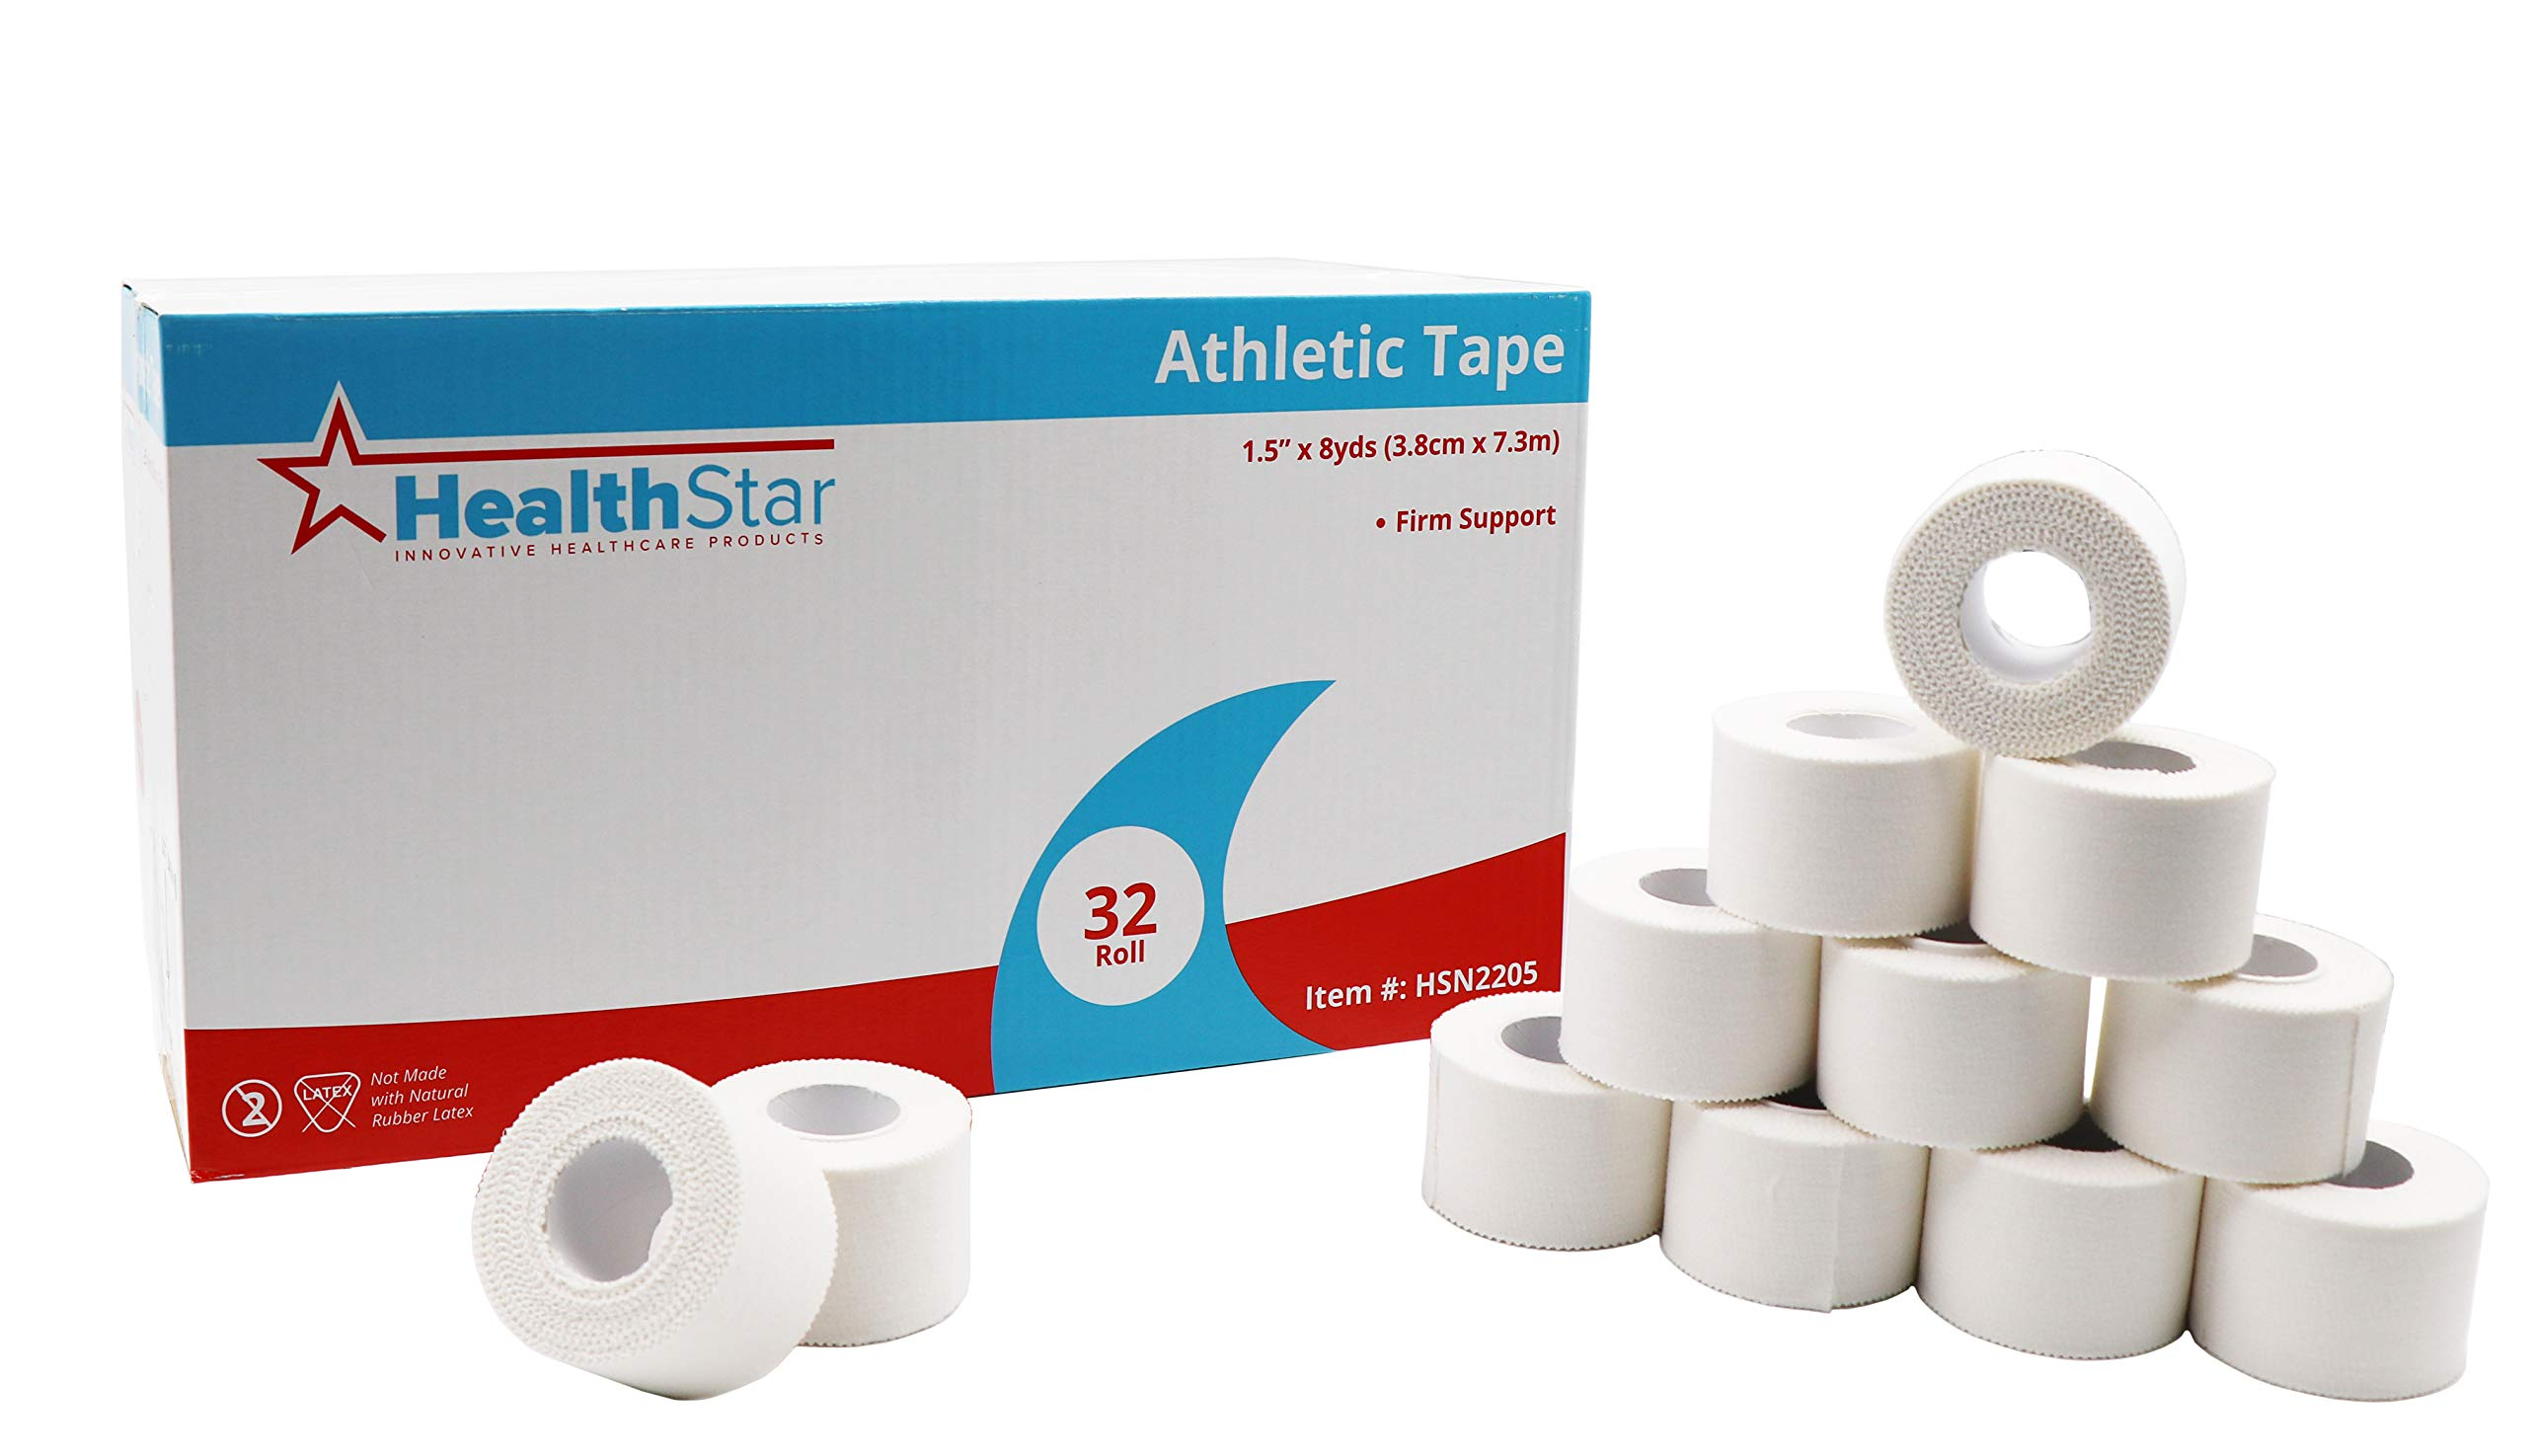 HealthStar White Athletic Tape, 1.5 in X 8 YD for Muscle Support, Joint Protection & Compression Therapy, Latex Free (32 Rolls)